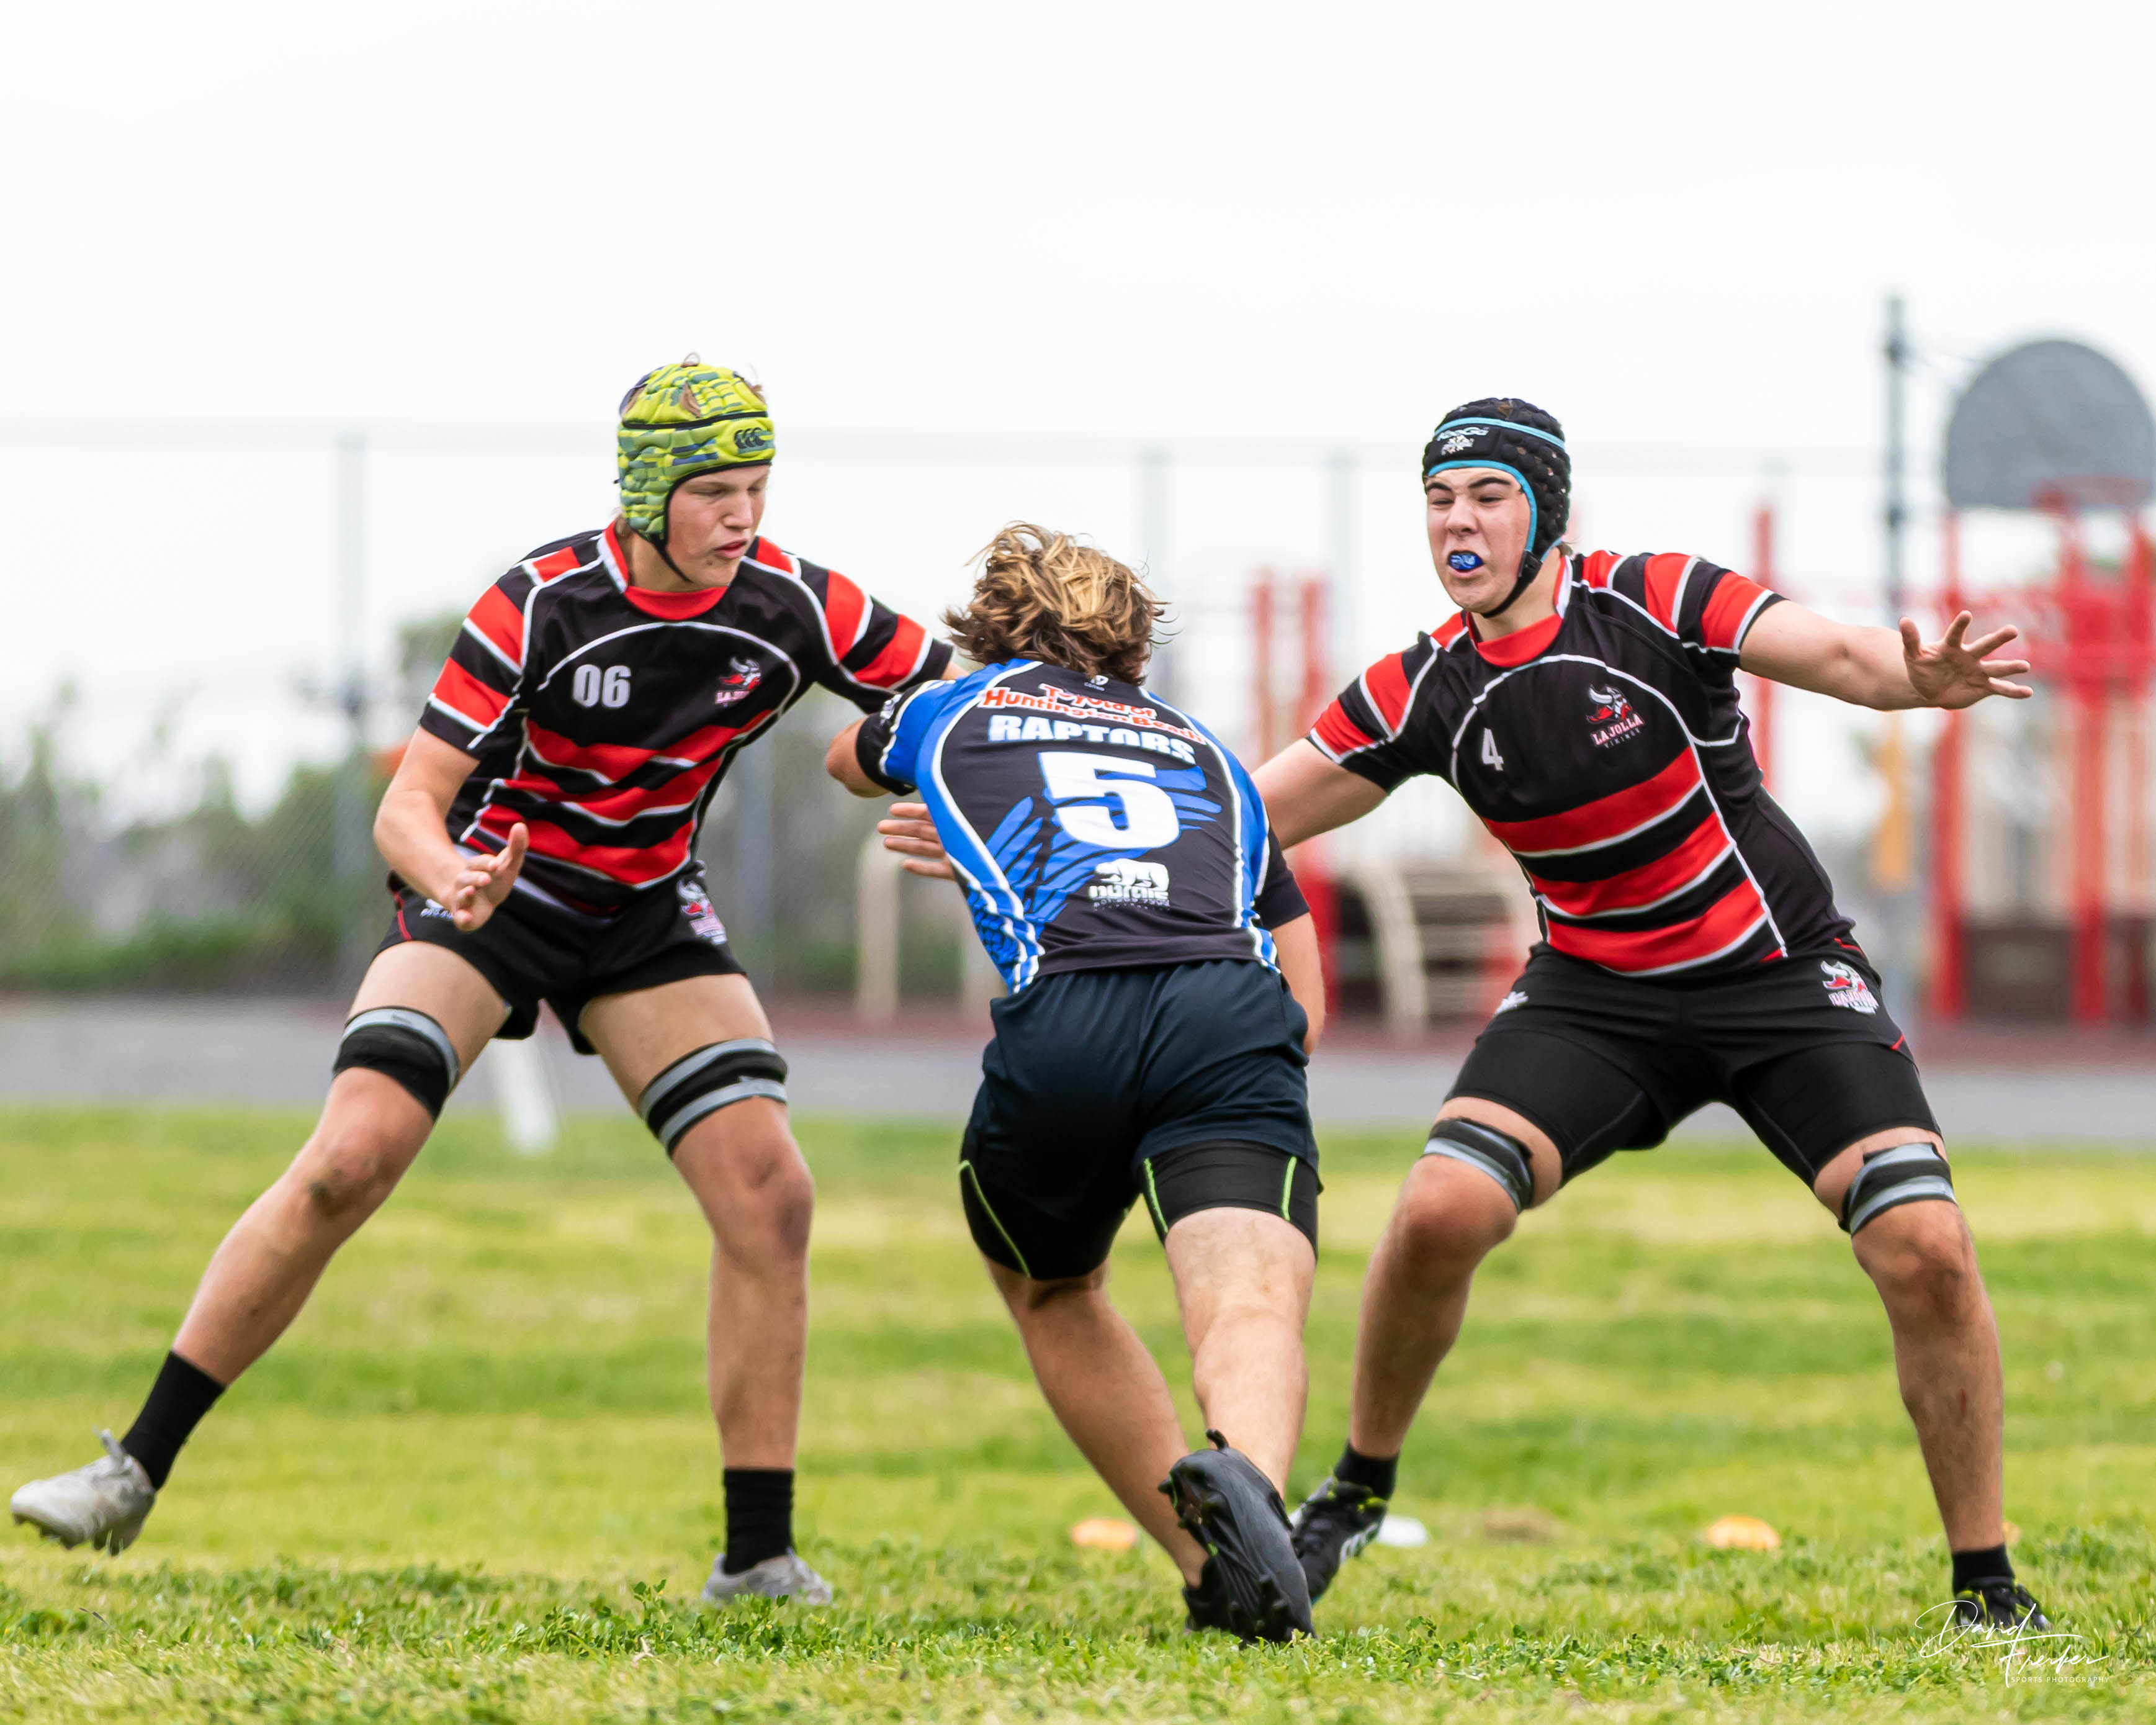 LaJollaRugby77